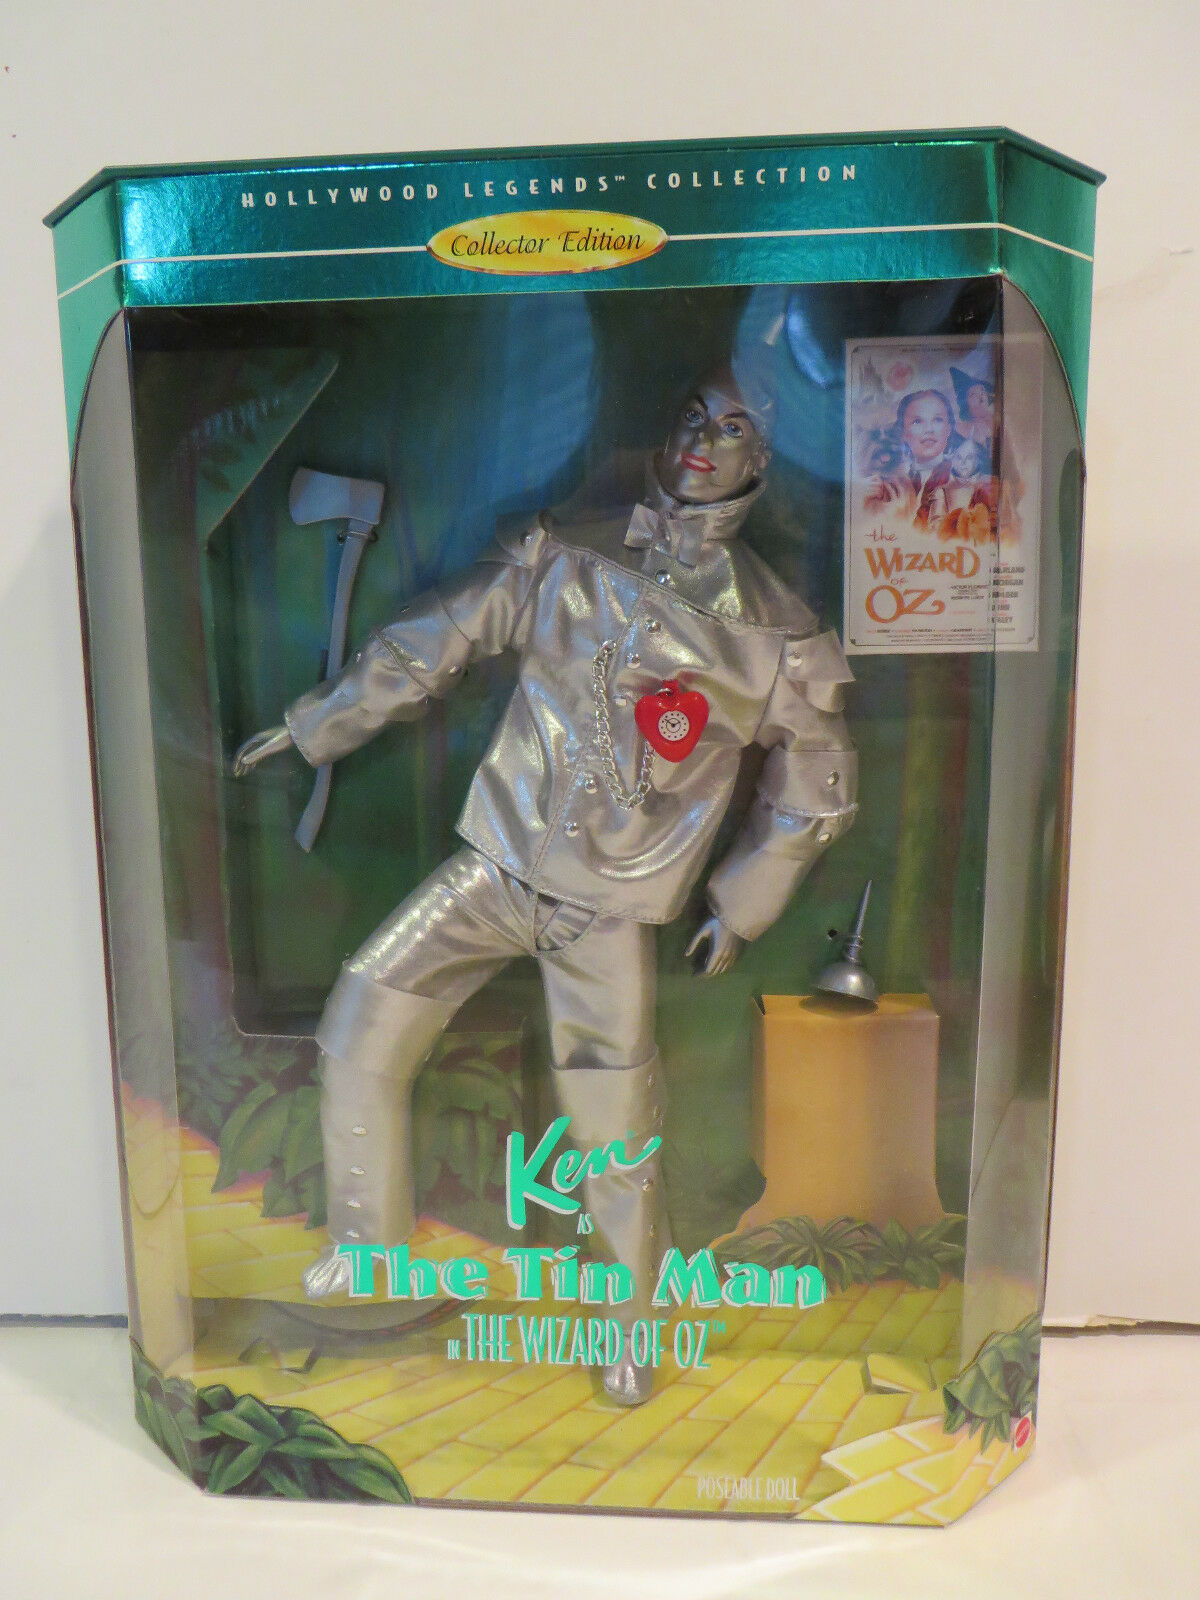 KEN AS THE TIN MAN IN THE WIZARD OF OZ